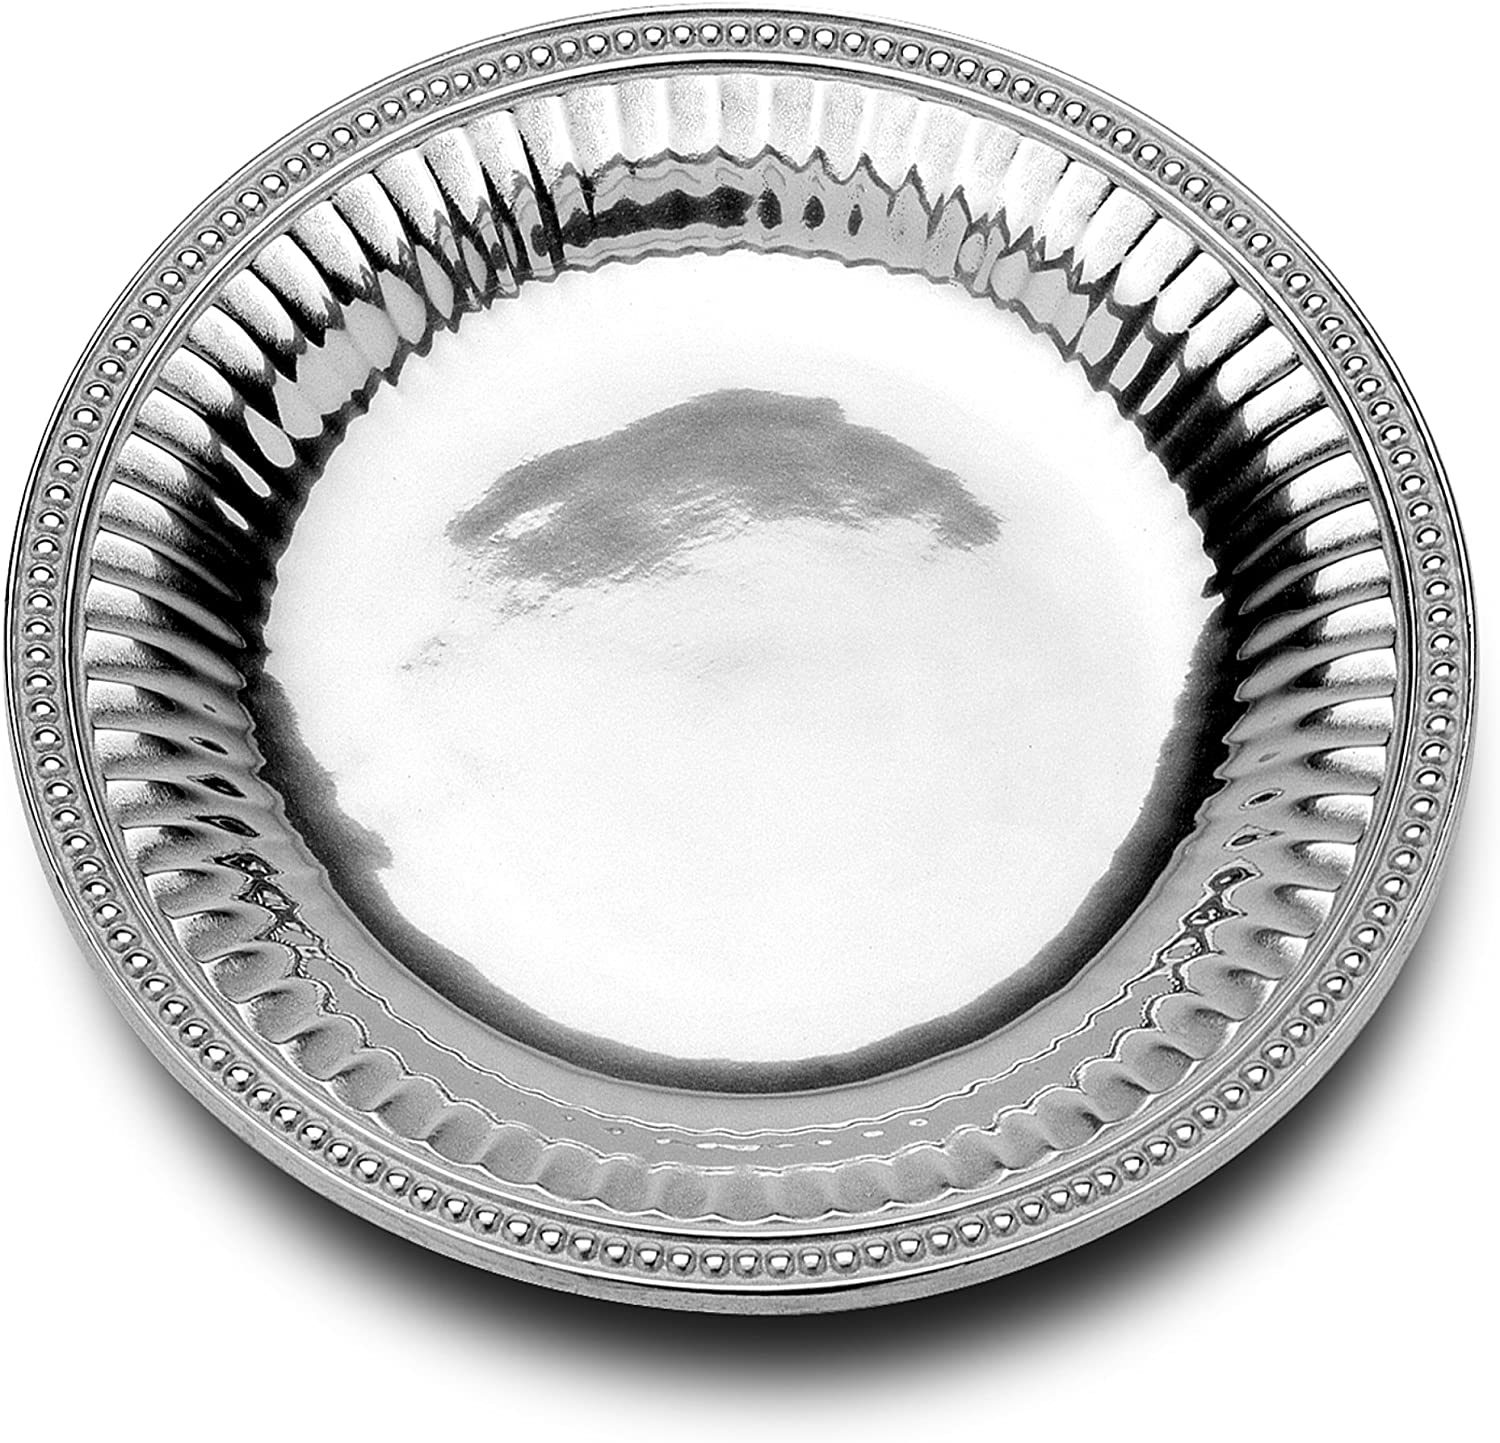 Amazon Com Wilton Armetale Flutes And Pearls Medium Round Serving Tray 13 5 Inch Kitchen Dining